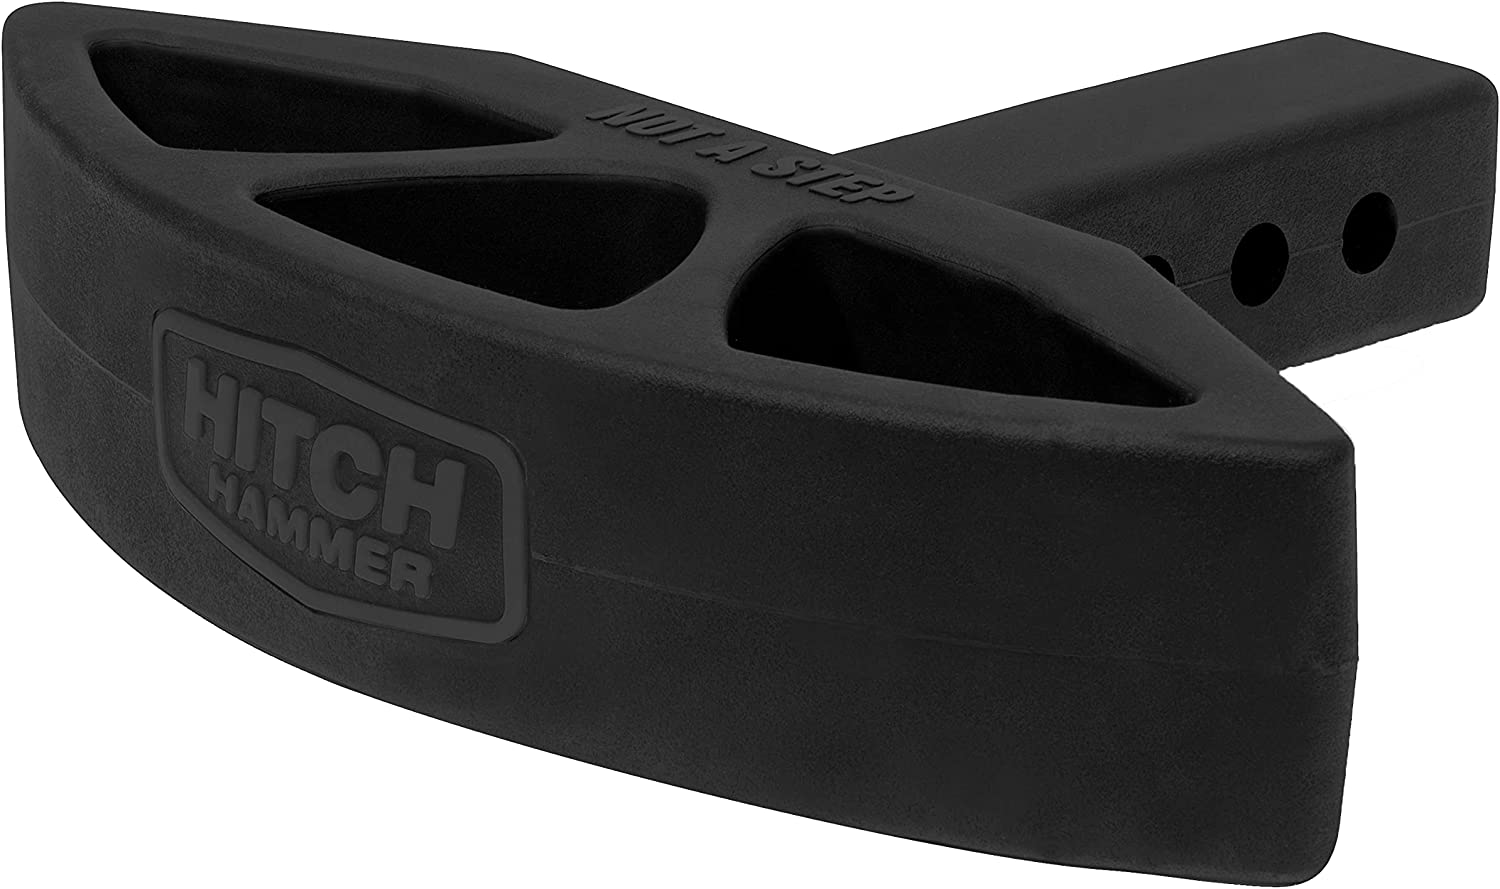 HitchHammer XL - Rear Hitch Max 90% OFF Flexible Mounted Guard. Rubbe Bumper Shipping included